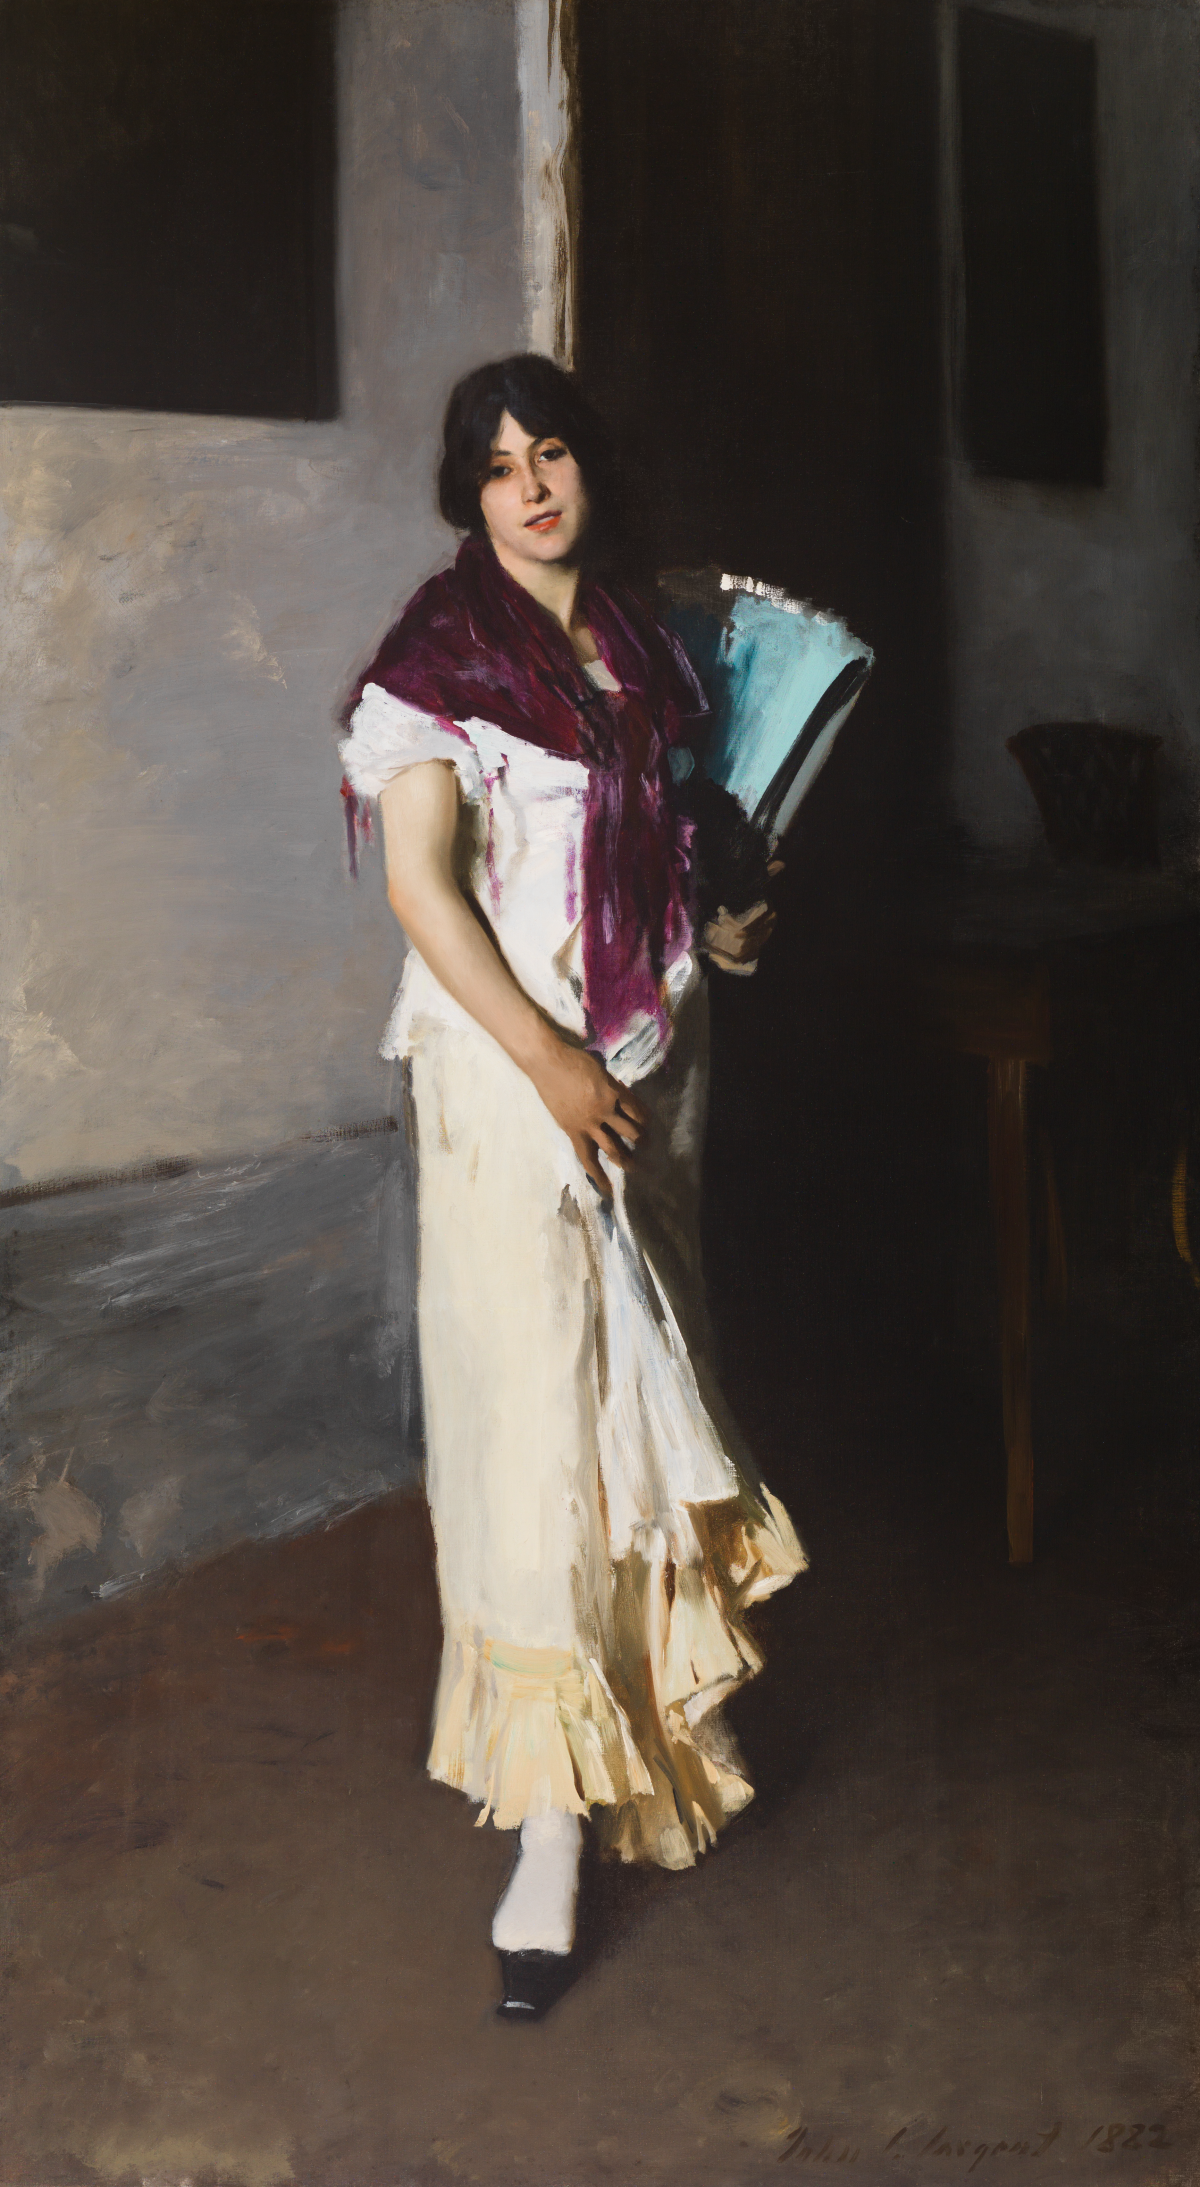 A painting of a young woman in a long white dress and a purple scarf.